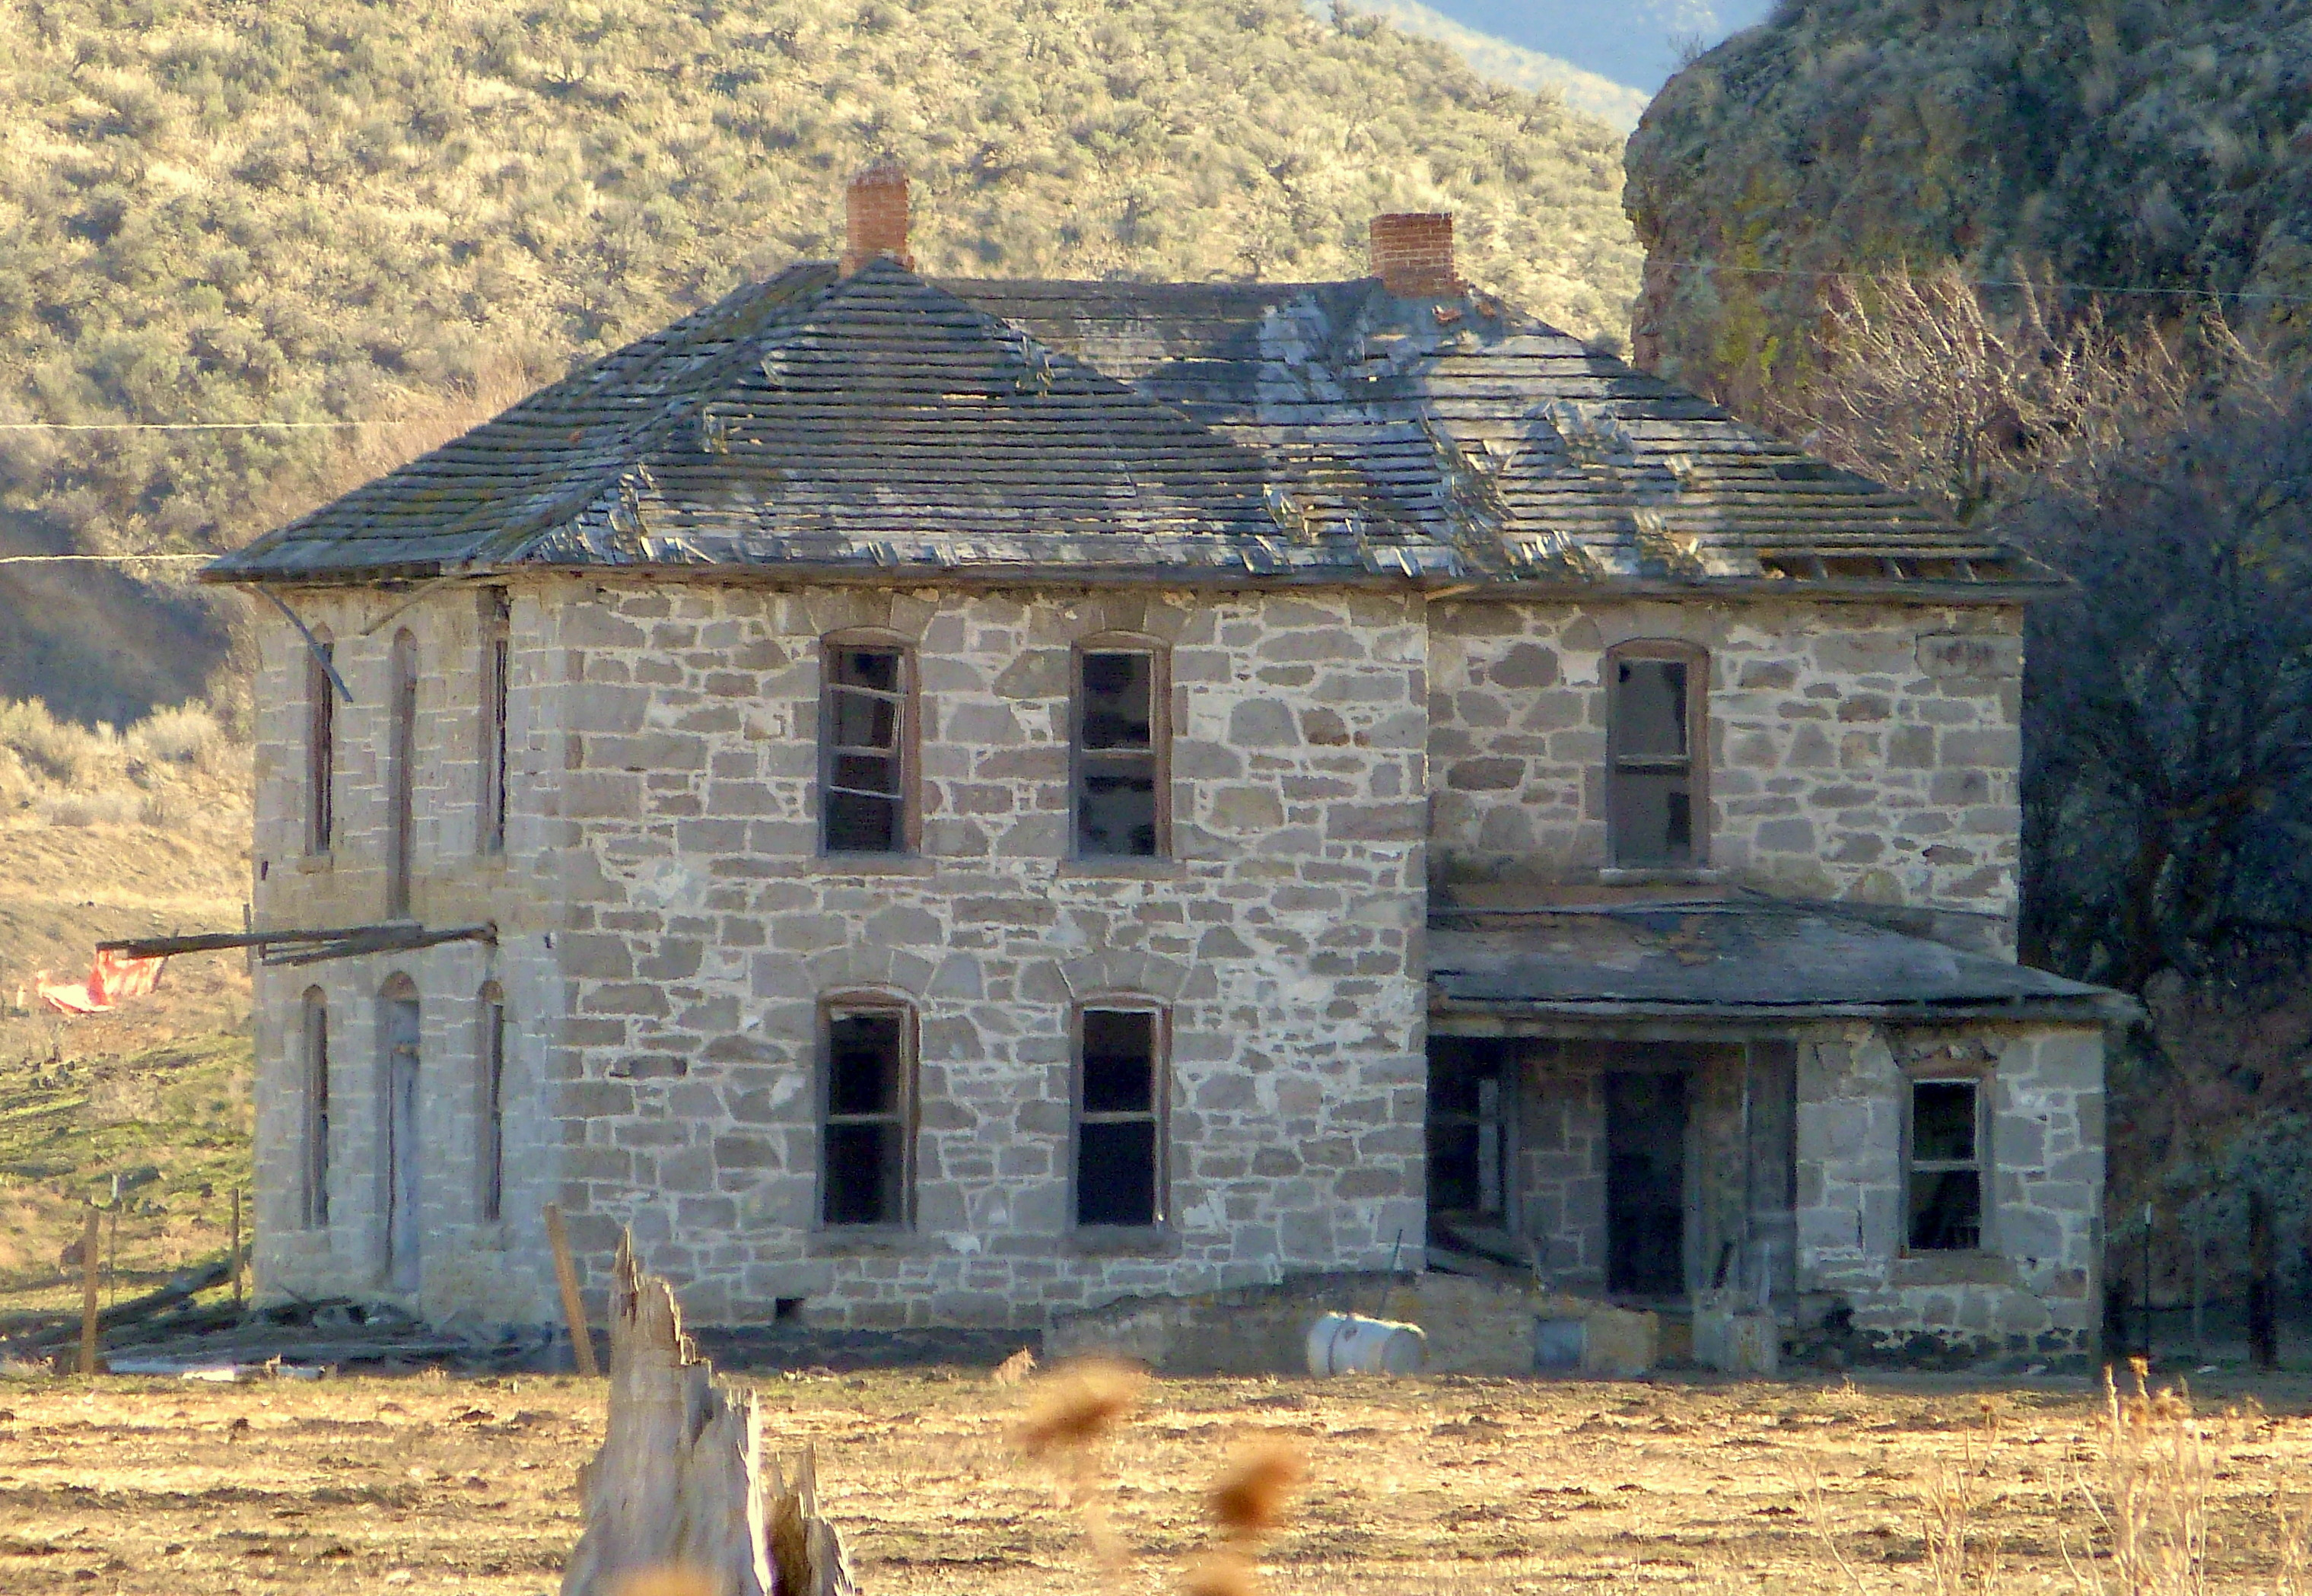 Moses and mary hart stone house and ranch complex wikiwand for House of granite and marble